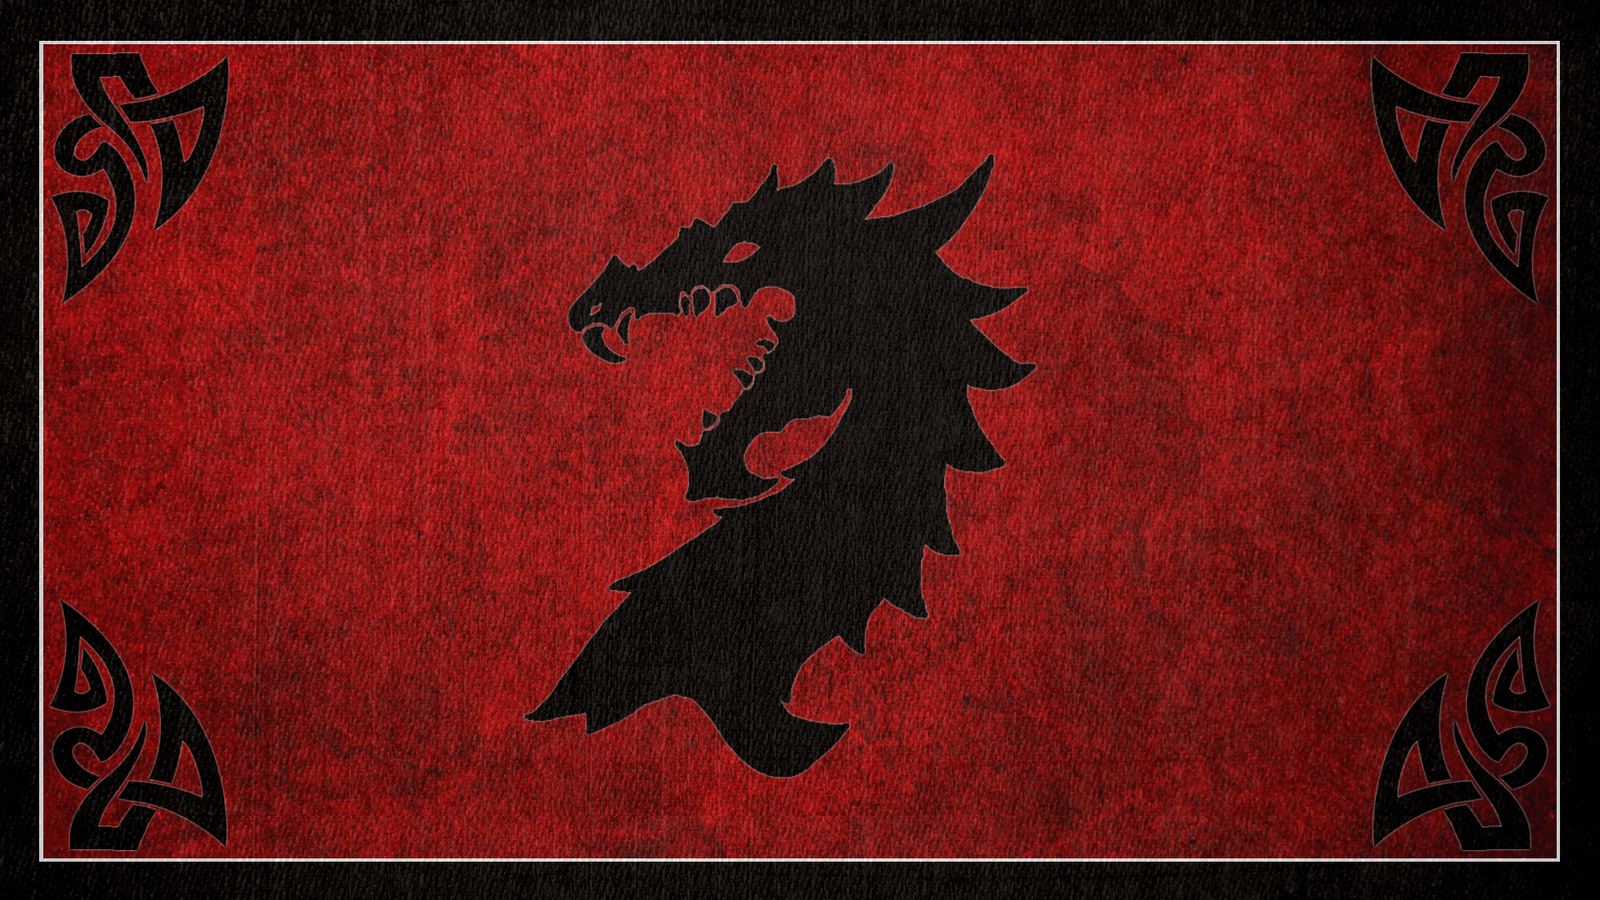 The Elder Scrolls: Flag of the Ebonheart Pact by okiir